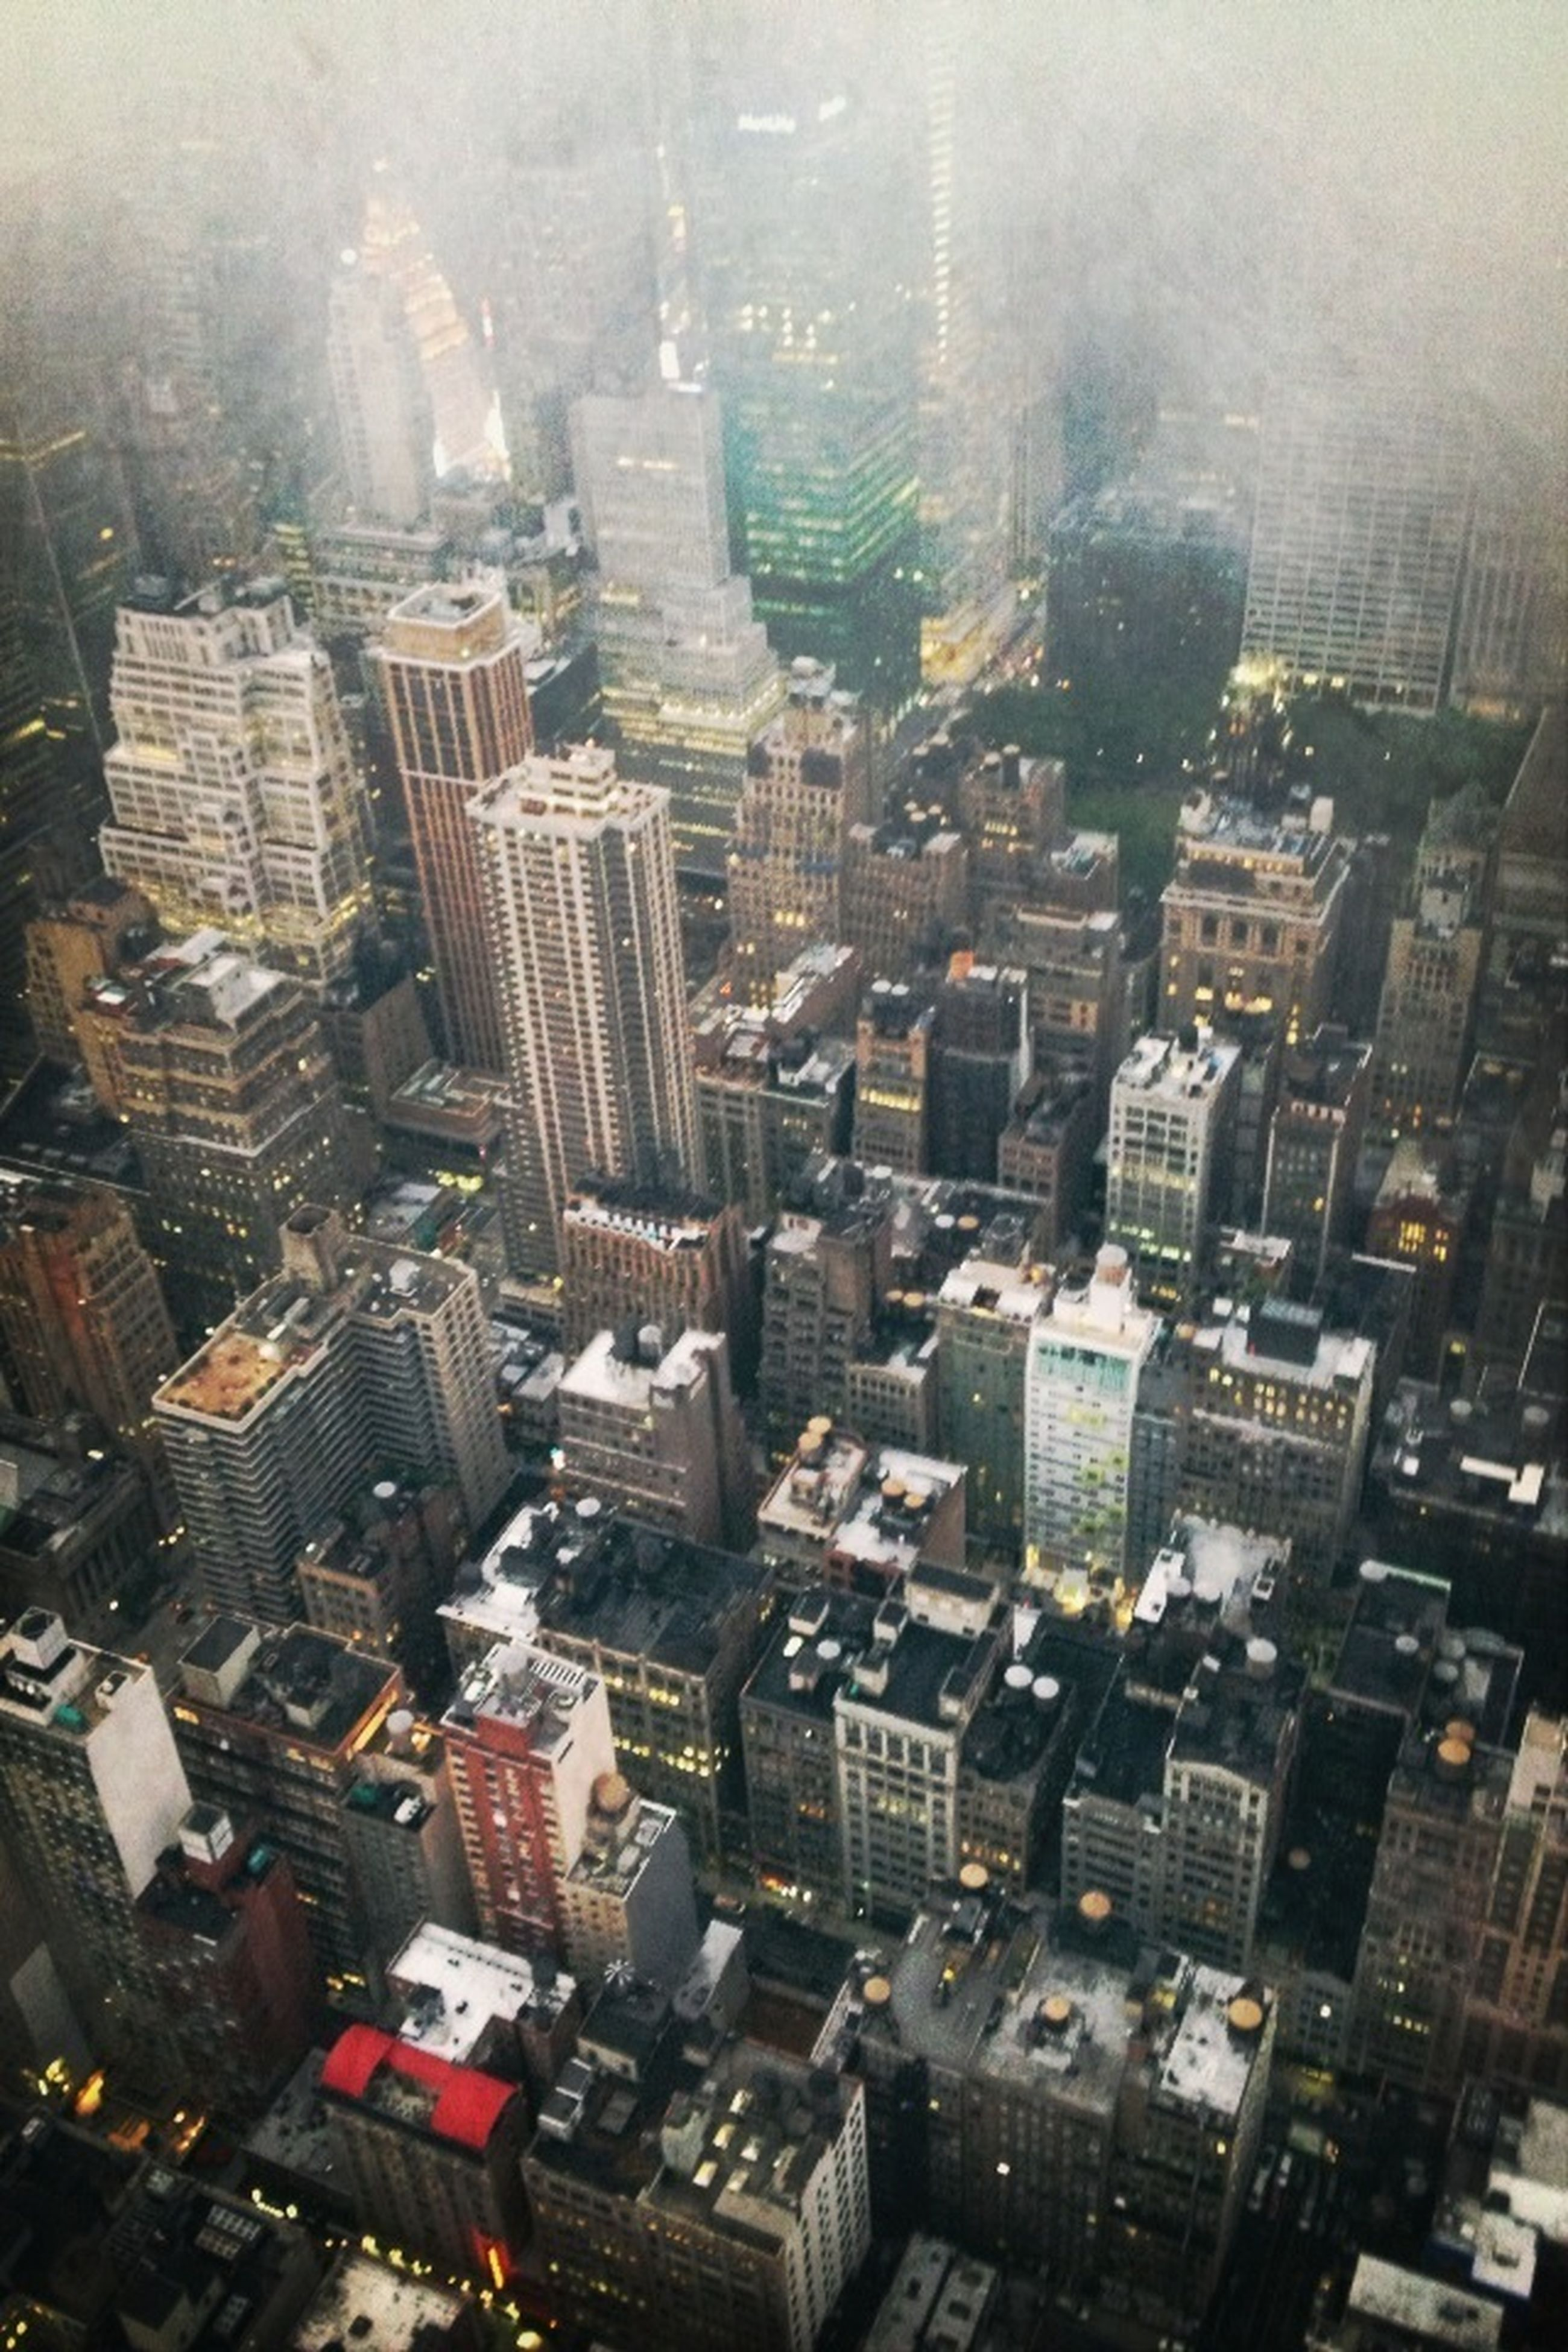 building exterior, architecture, built structure, cityscape, city, crowded, high angle view, aerial view, skyscraper, residential district, tower, residential building, tall - high, residential structure, office building, city life, modern, capital cities, no people, day